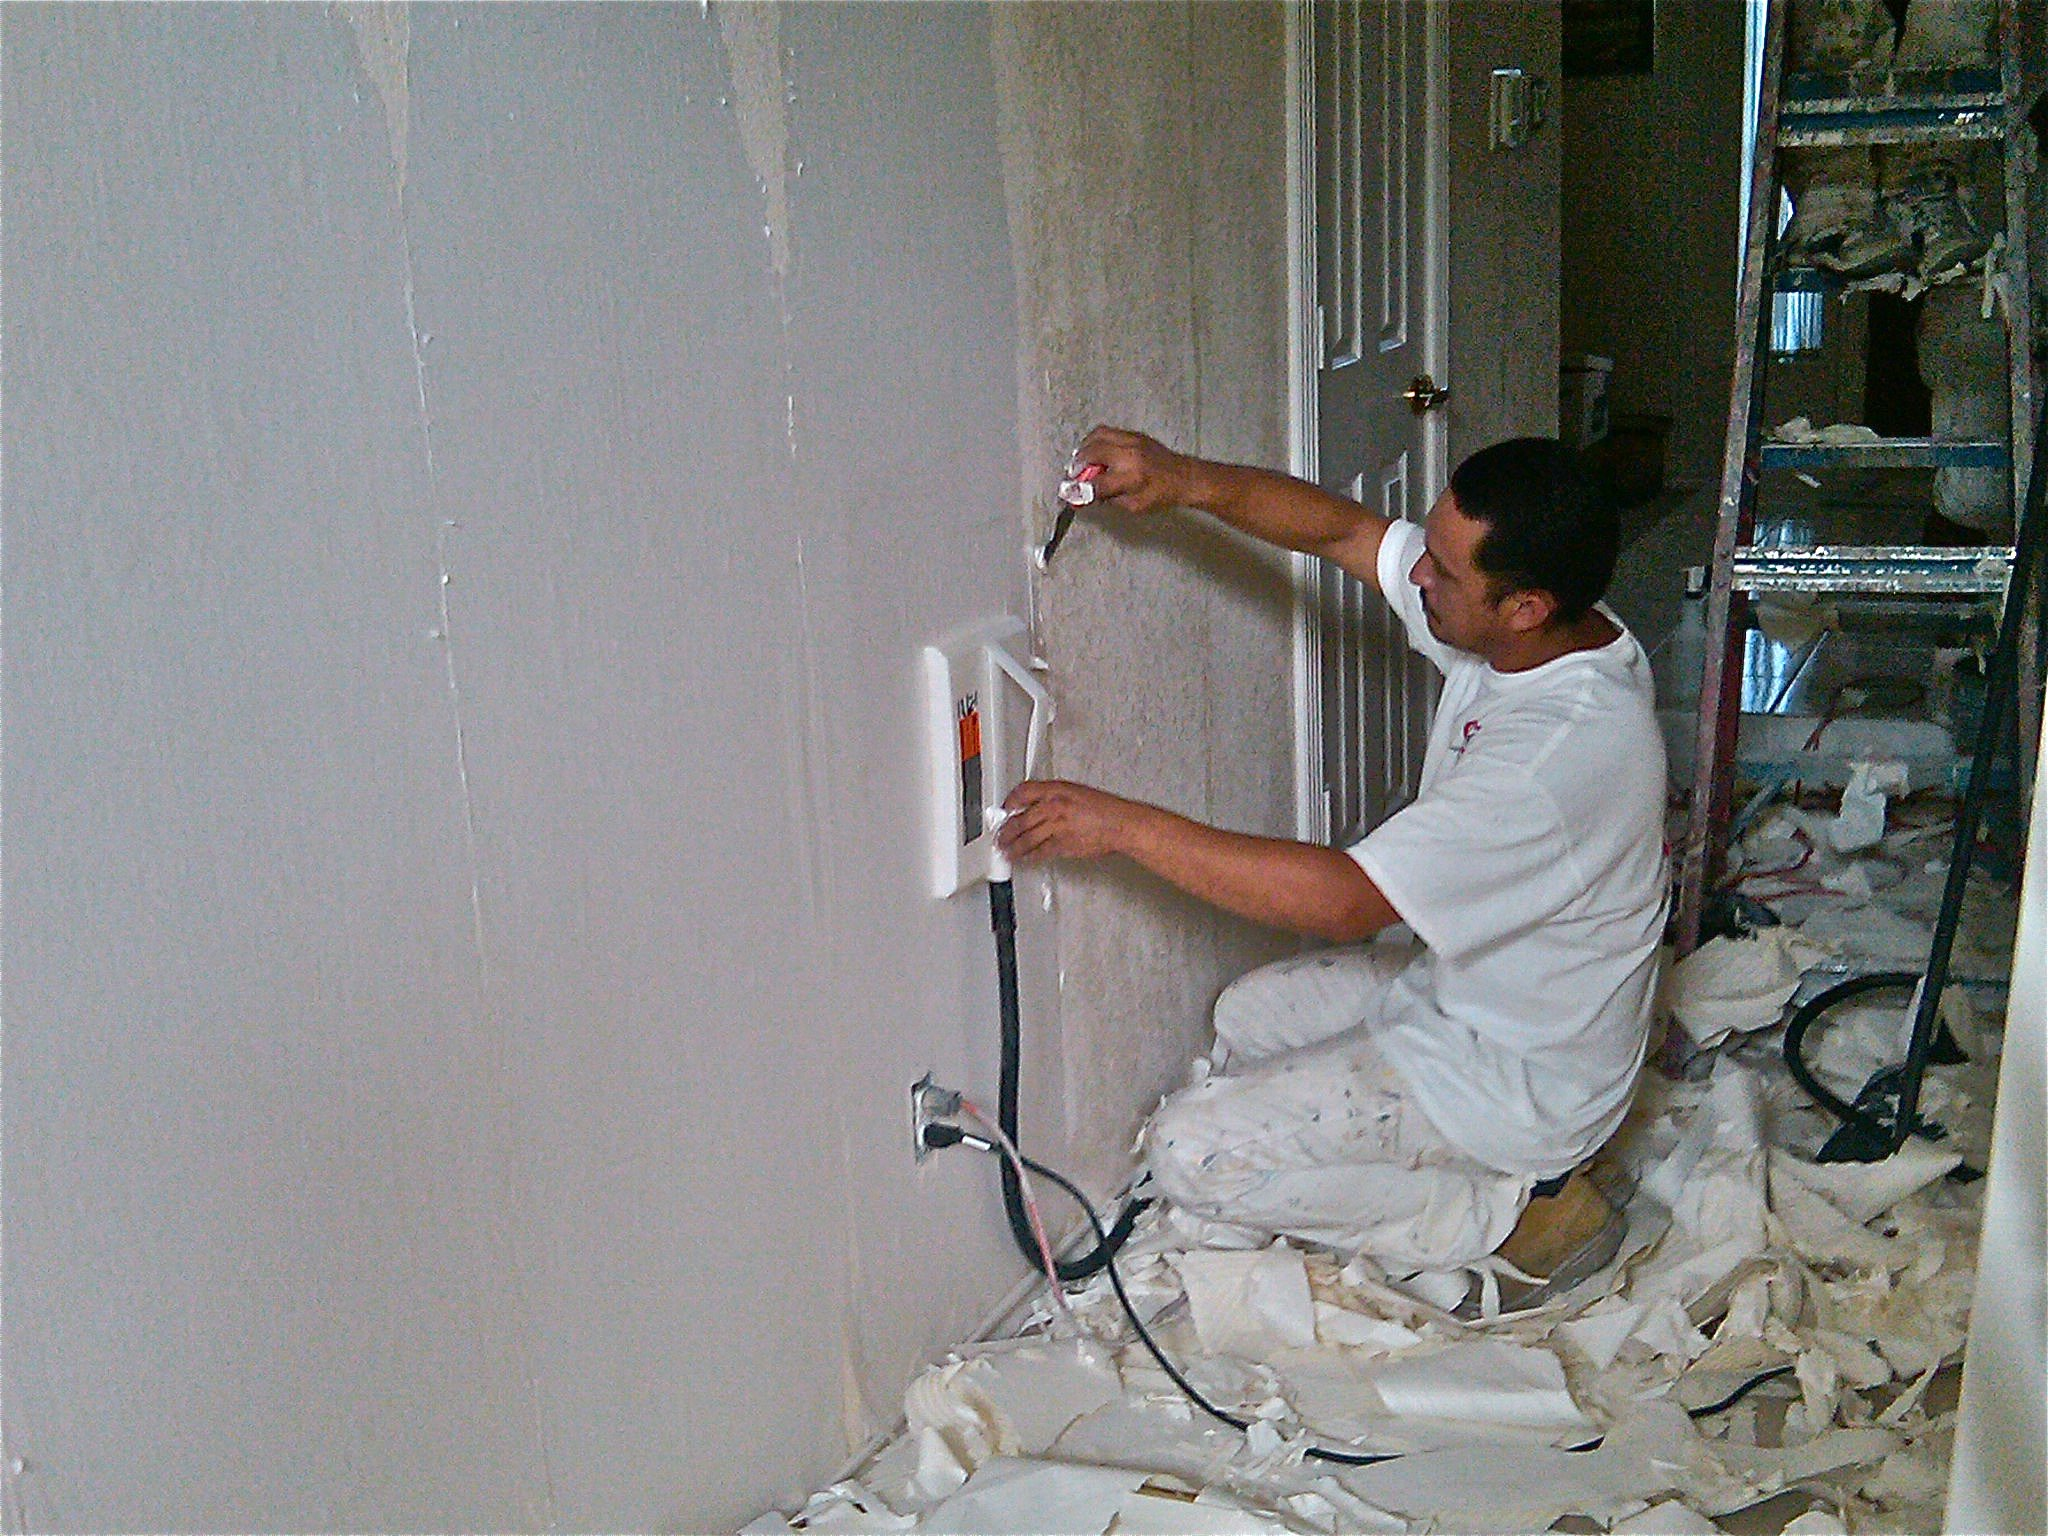 Wallpaper Removal   DFW Painting 2048x1536